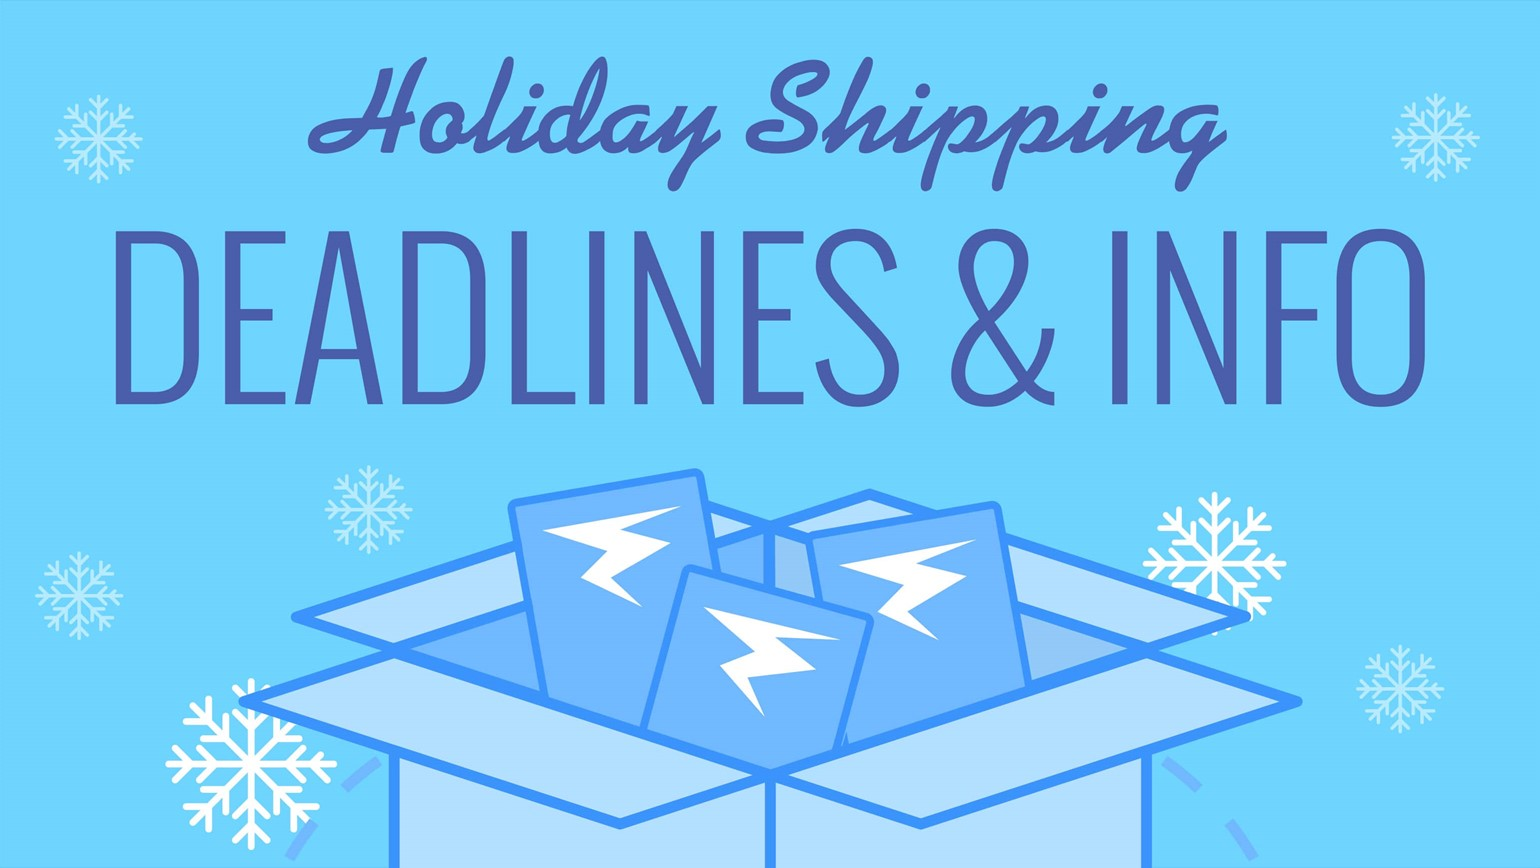 Key Holiday Shipping Deadlines & Info